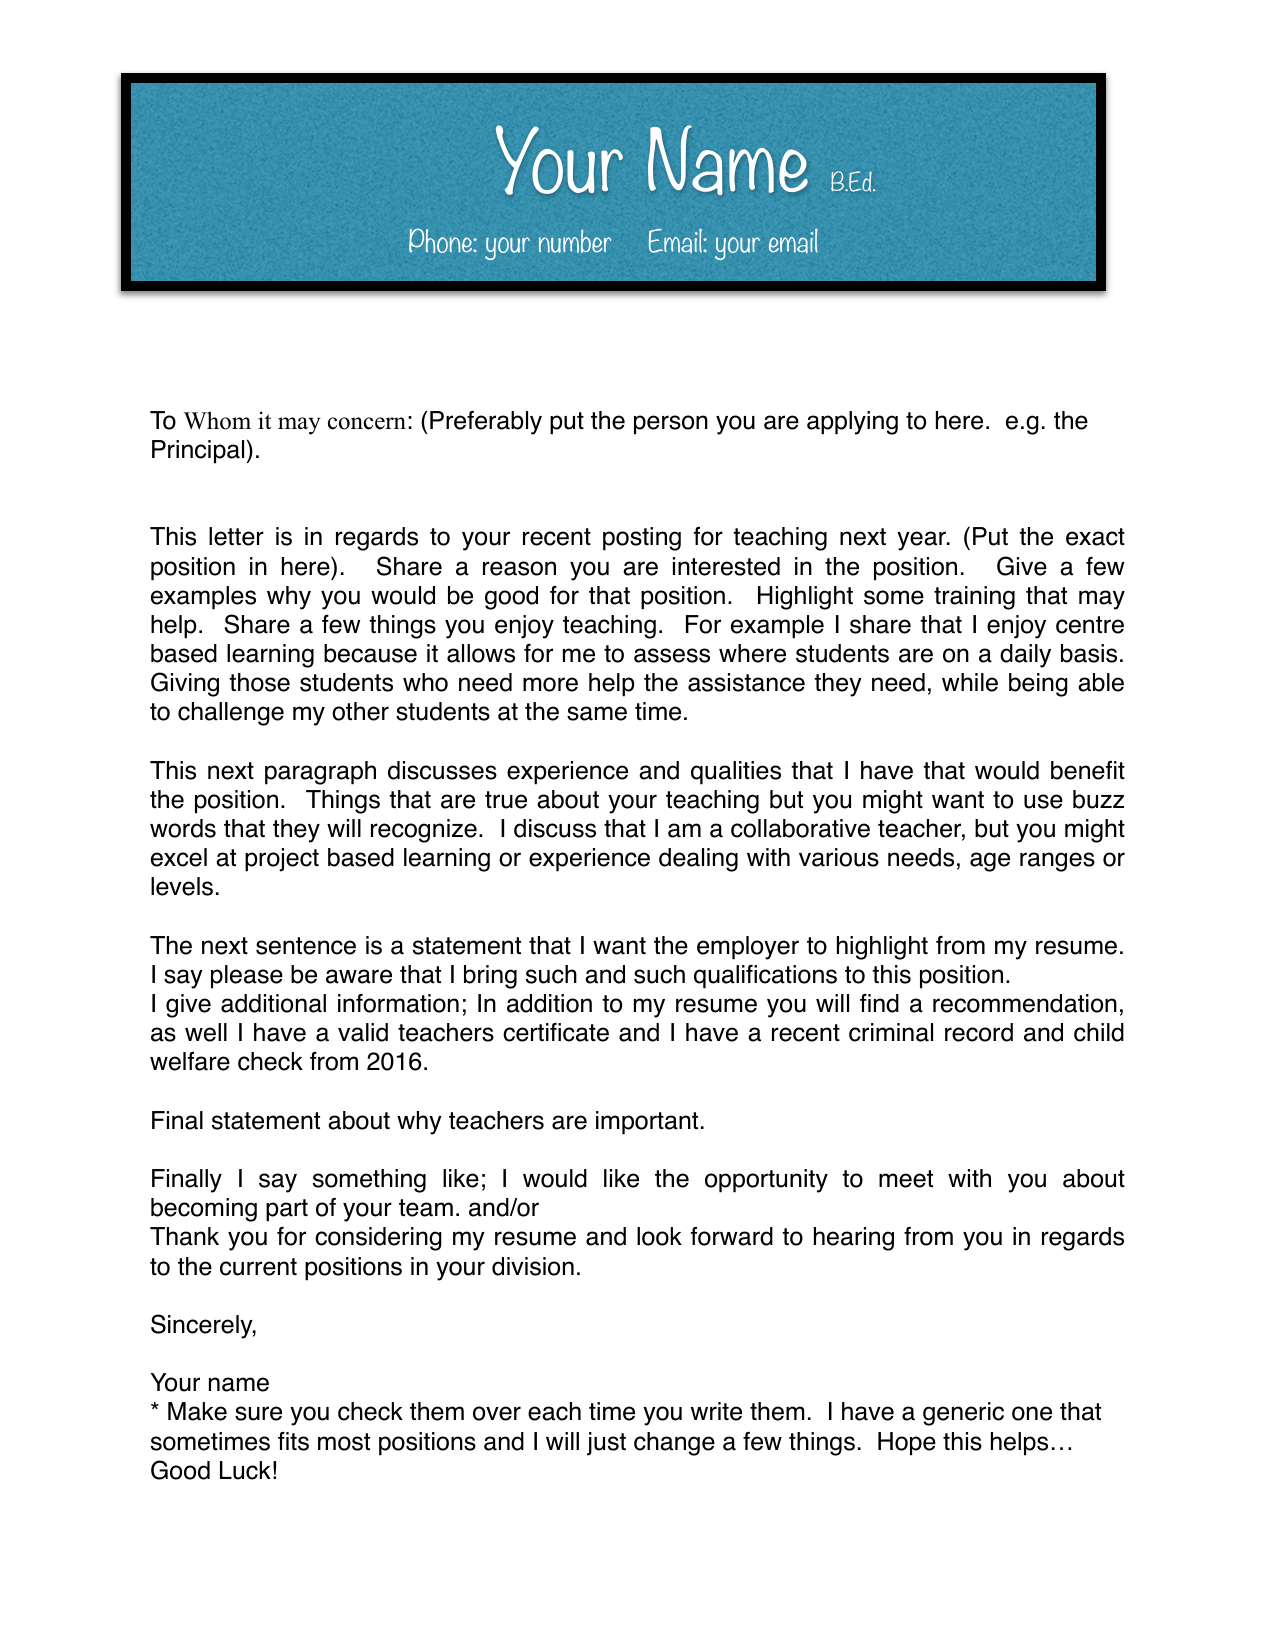 Resume Cover Letter Resource Preview